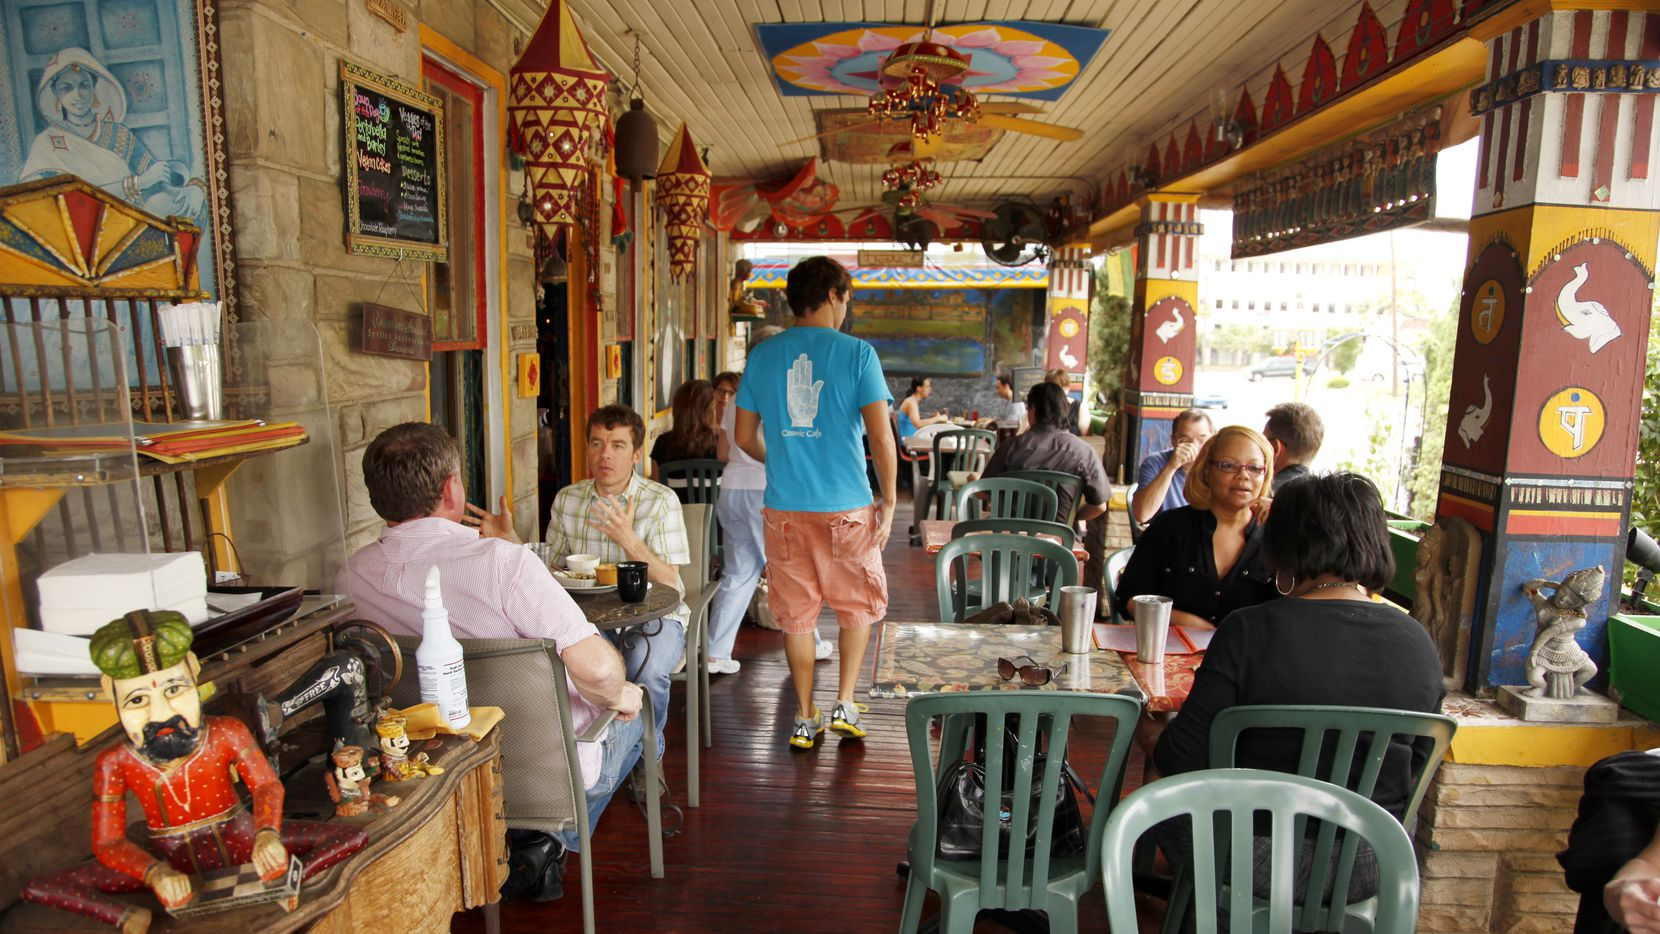 The lunch crowd on the patio at Cosmic Cafe, photographed April 26, 2012.